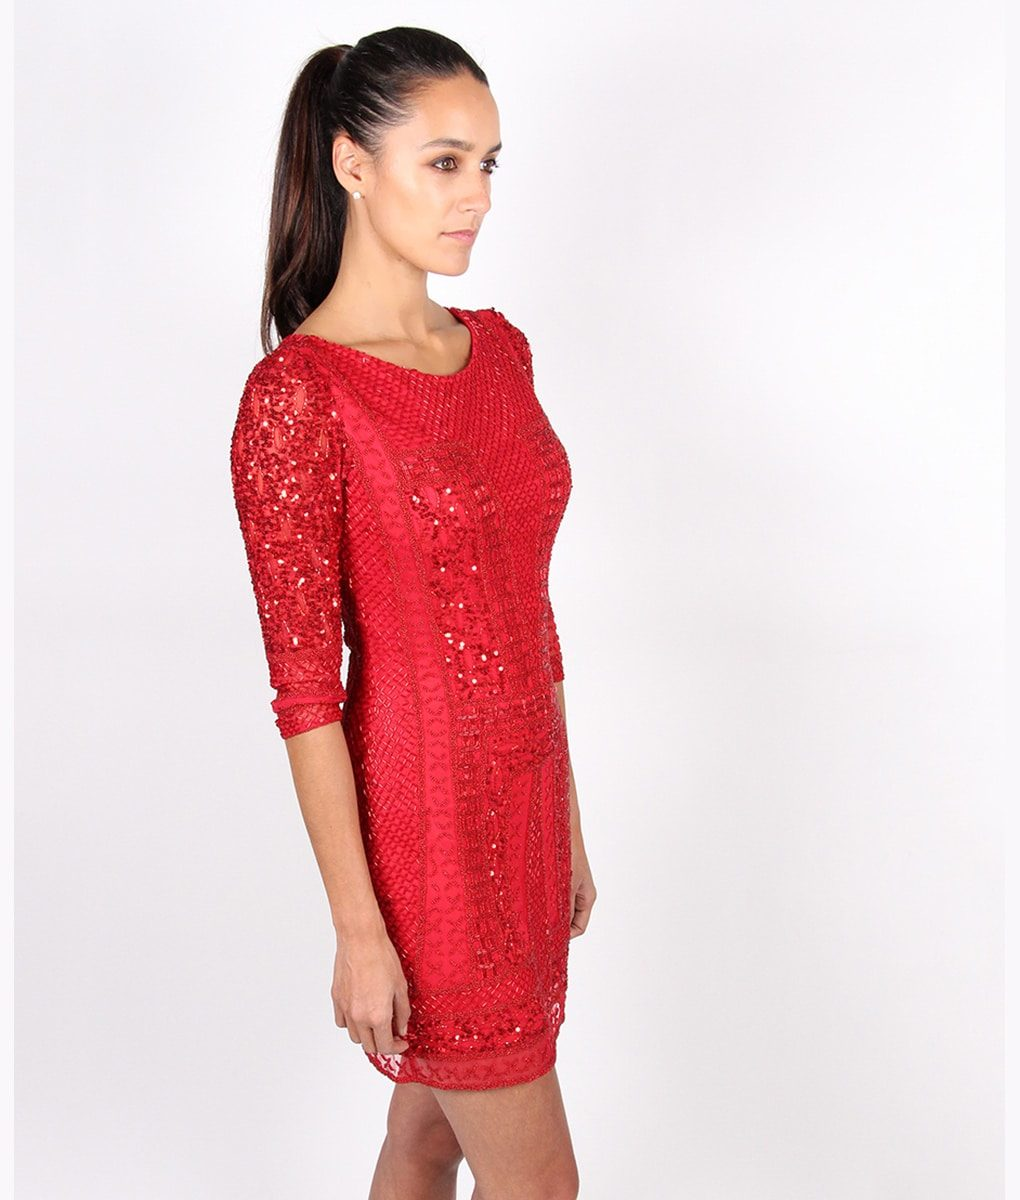 Alila-Red-Long-sleeve-Sequin-mini-dress-by-Scala-side